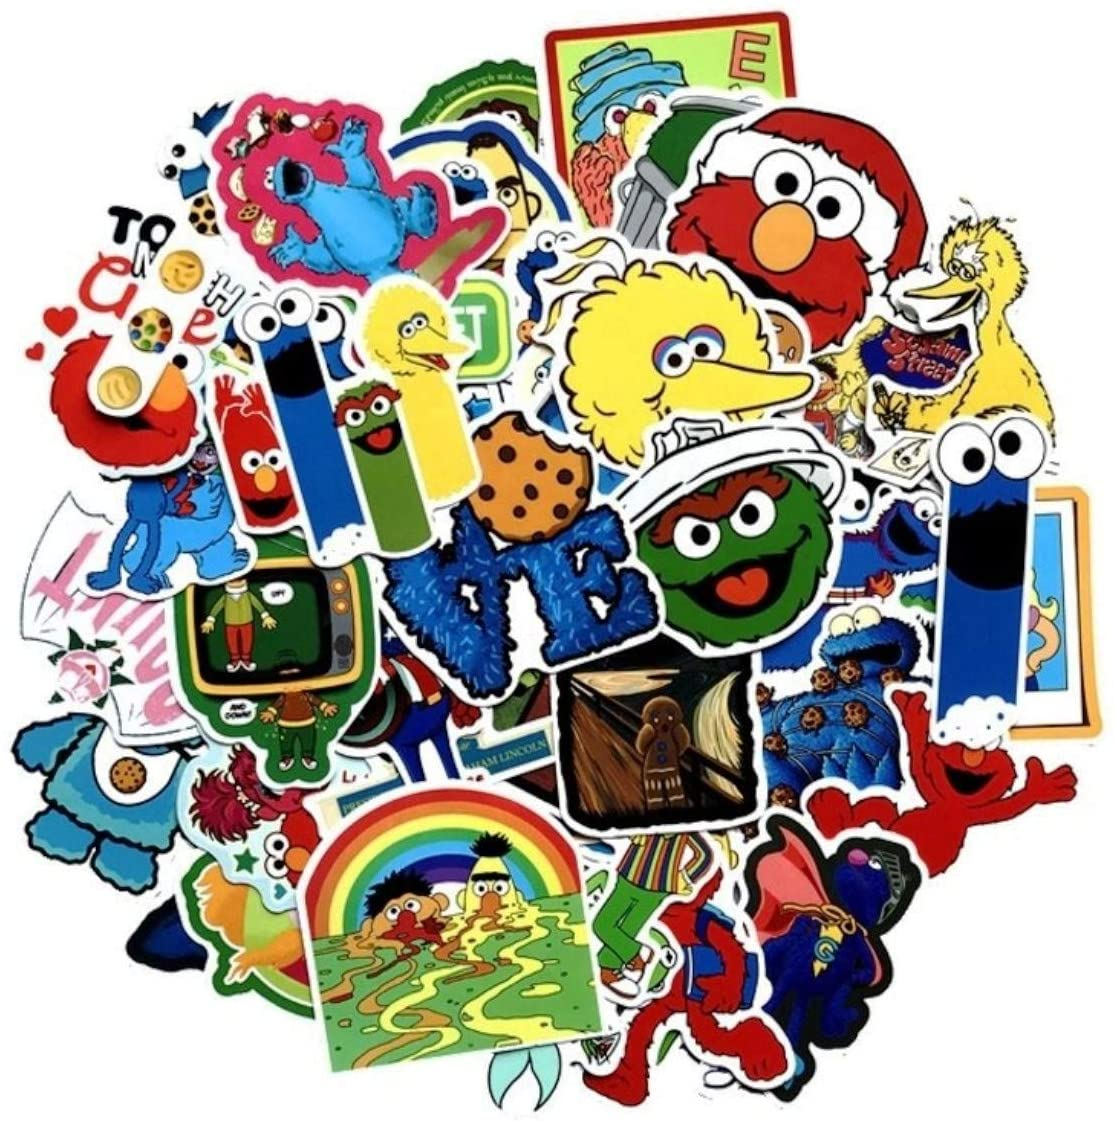 Mainstreet247 Cookie Monster Elmo and Friends Themed Set of 50 Sticker Decals